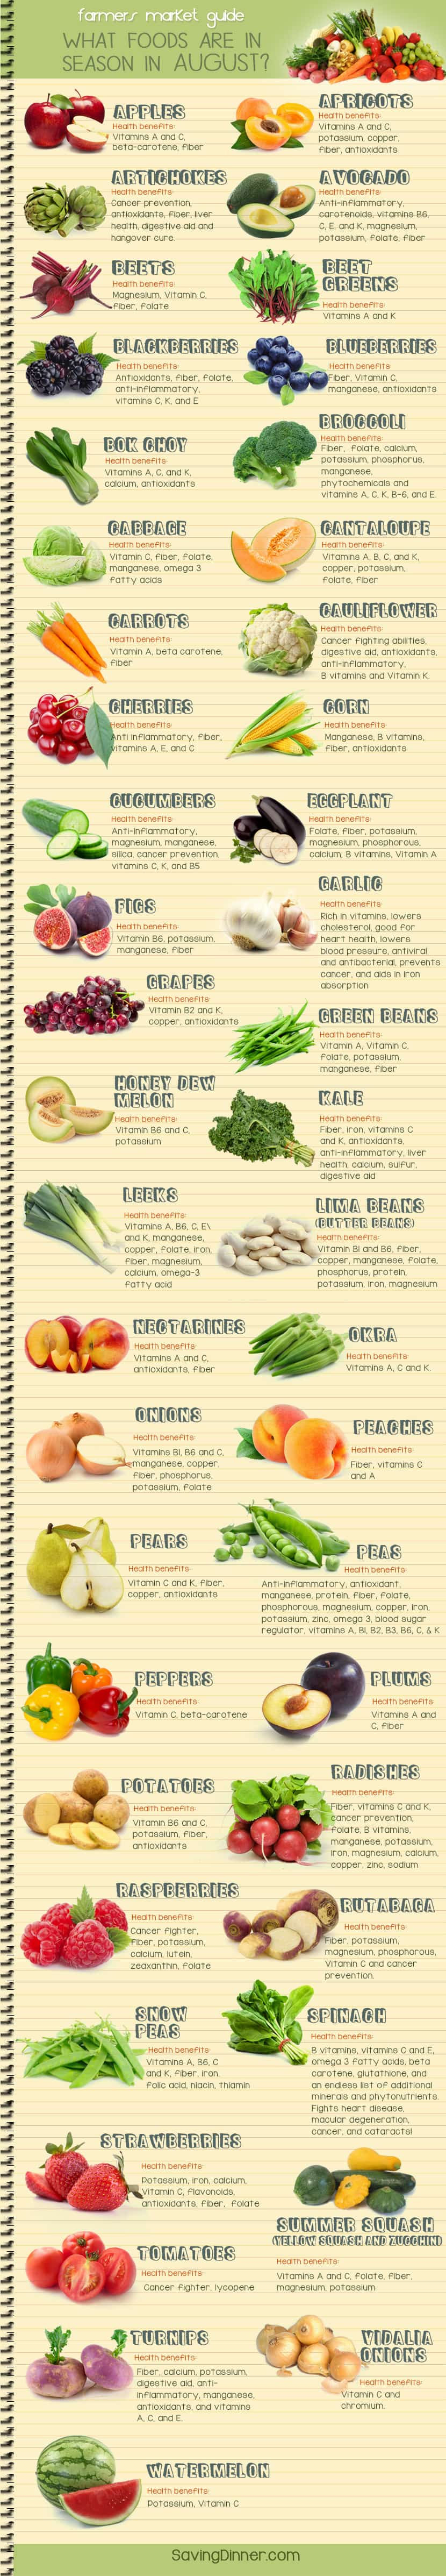 August Farmer's Market Guide Infographic